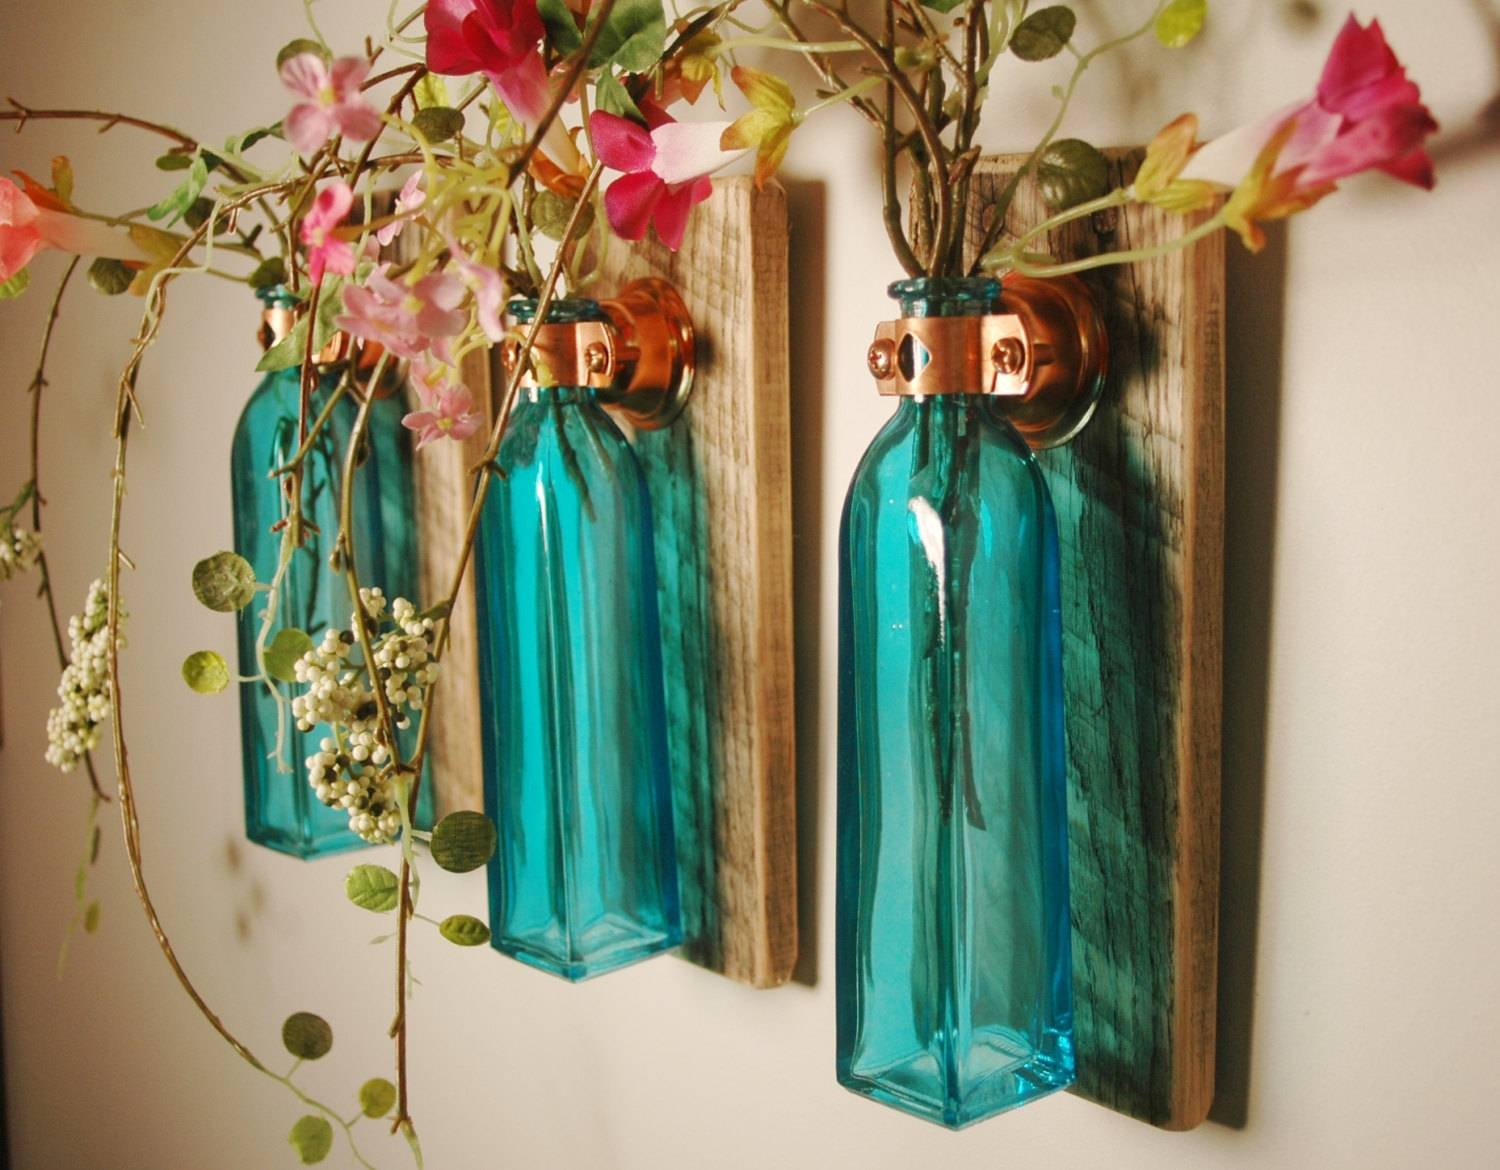 Delectable 25+ Turquoise Wall Decor Design Ideas Of 43 Turquoise Regarding Recent Red And Turquoise Wall Art (View 13 of 20)